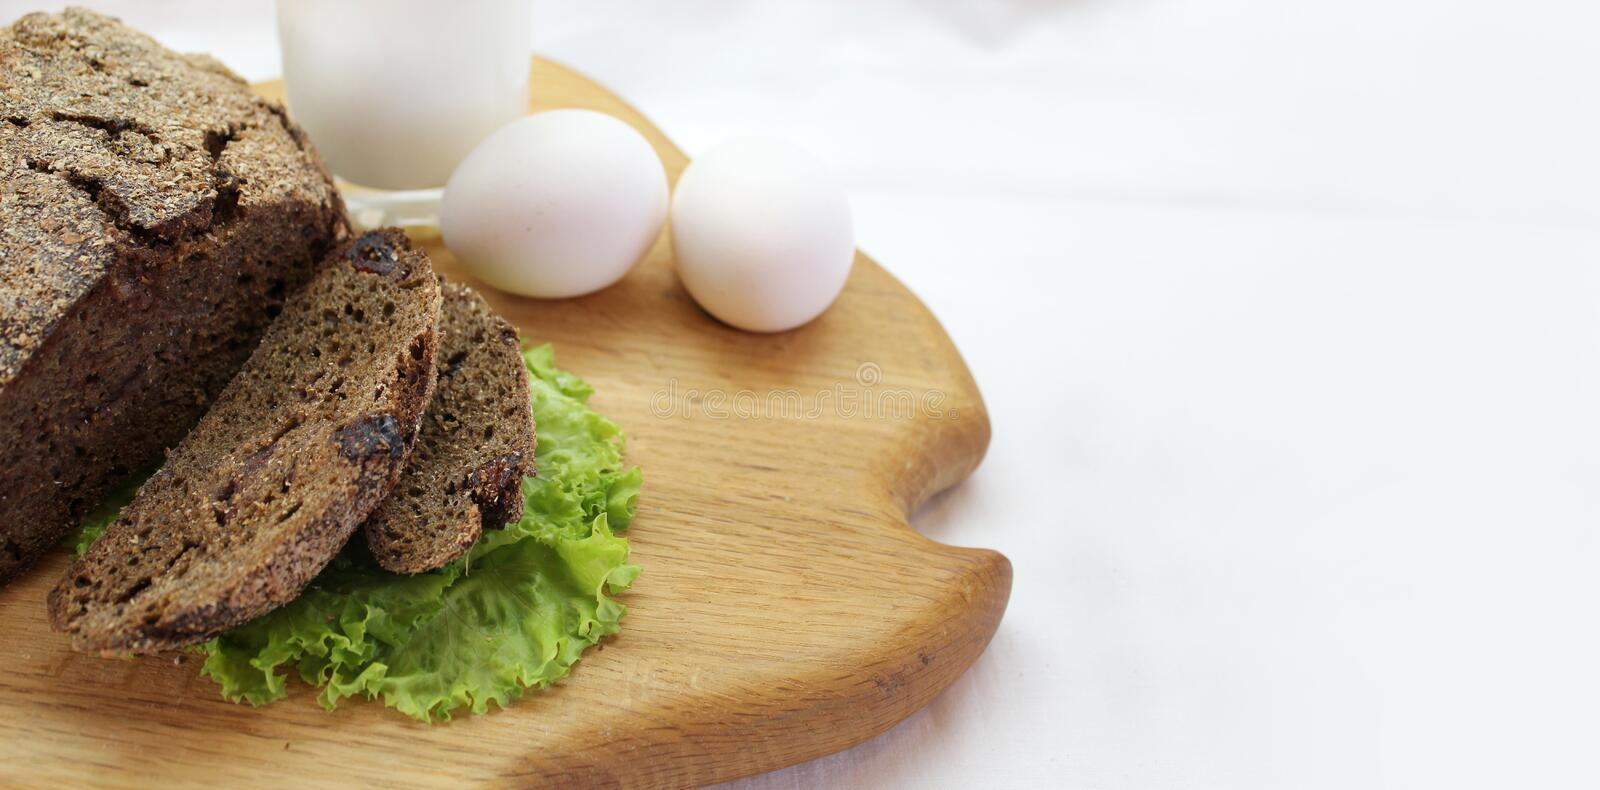 Rye bread with salad leaves, eggs and a glass of milk on a cutting Board with free space for text. royalty free stock photos